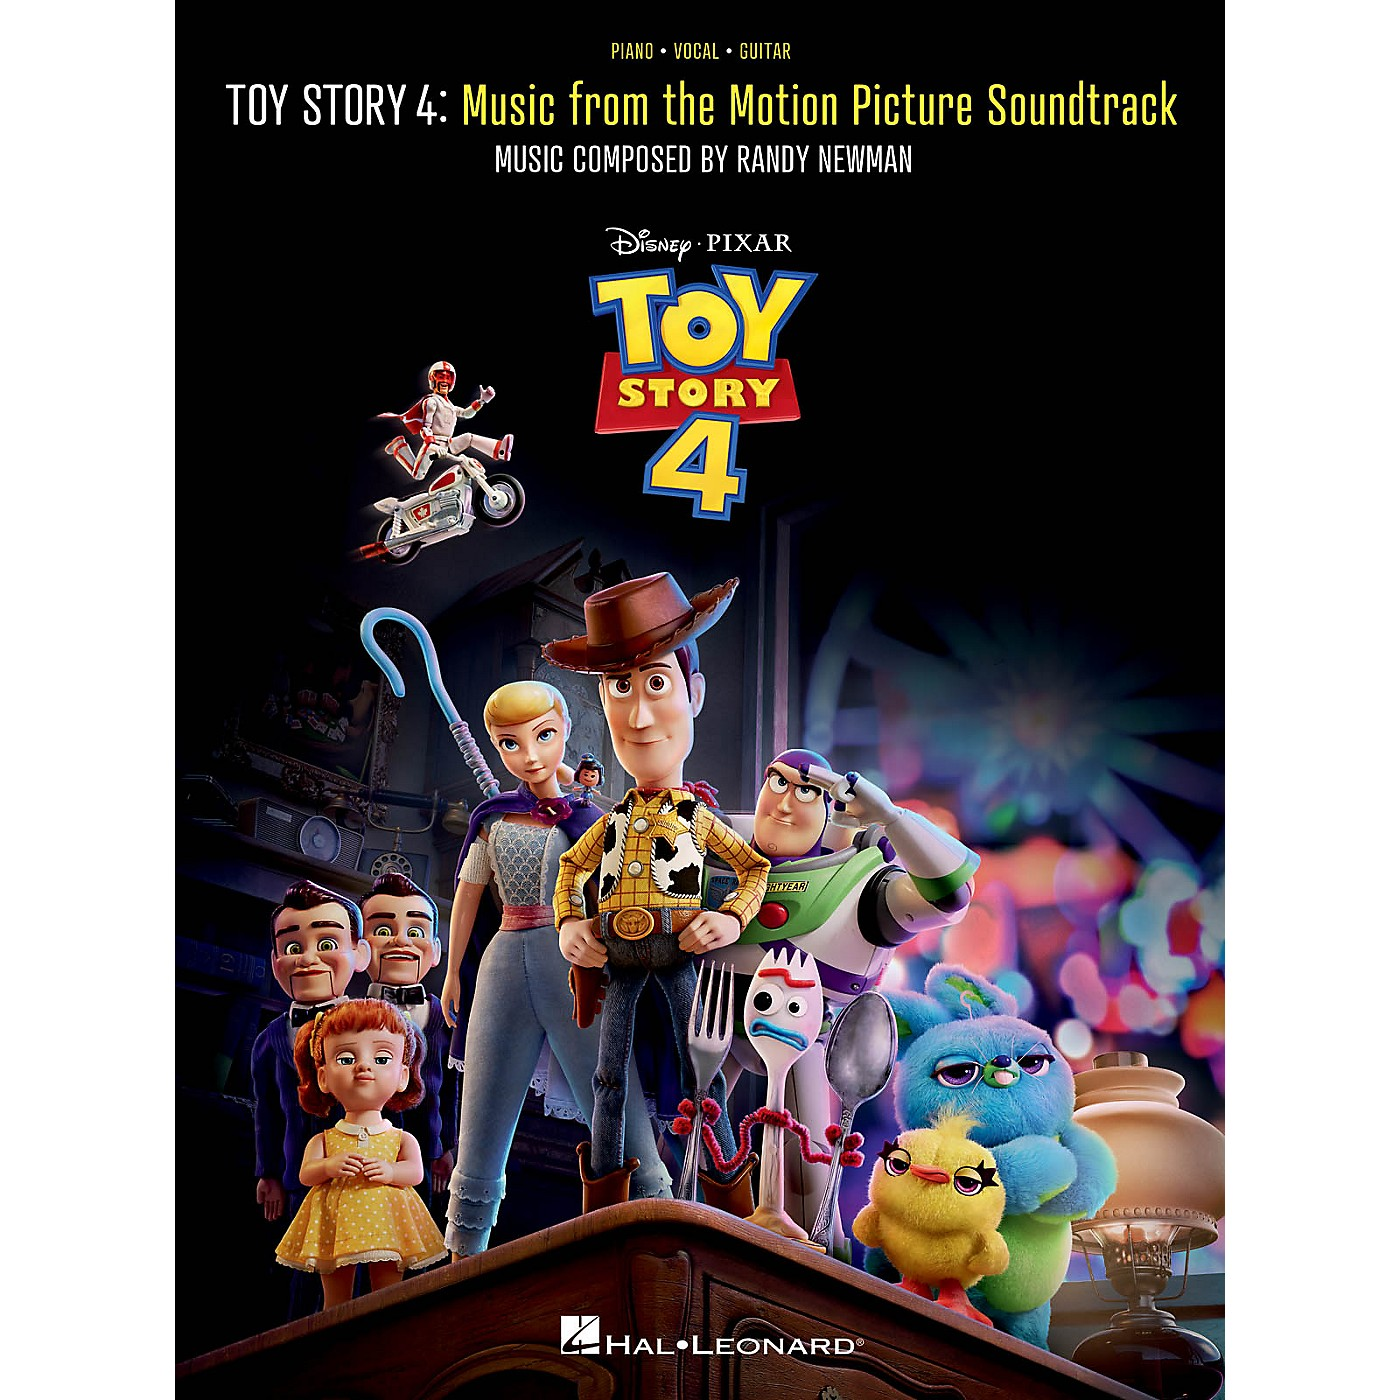 Hal Leonard Toy Story 4 (Music from the Motion Picture Soundtrack) Piano/Vocal/Guitar Songbook thumbnail